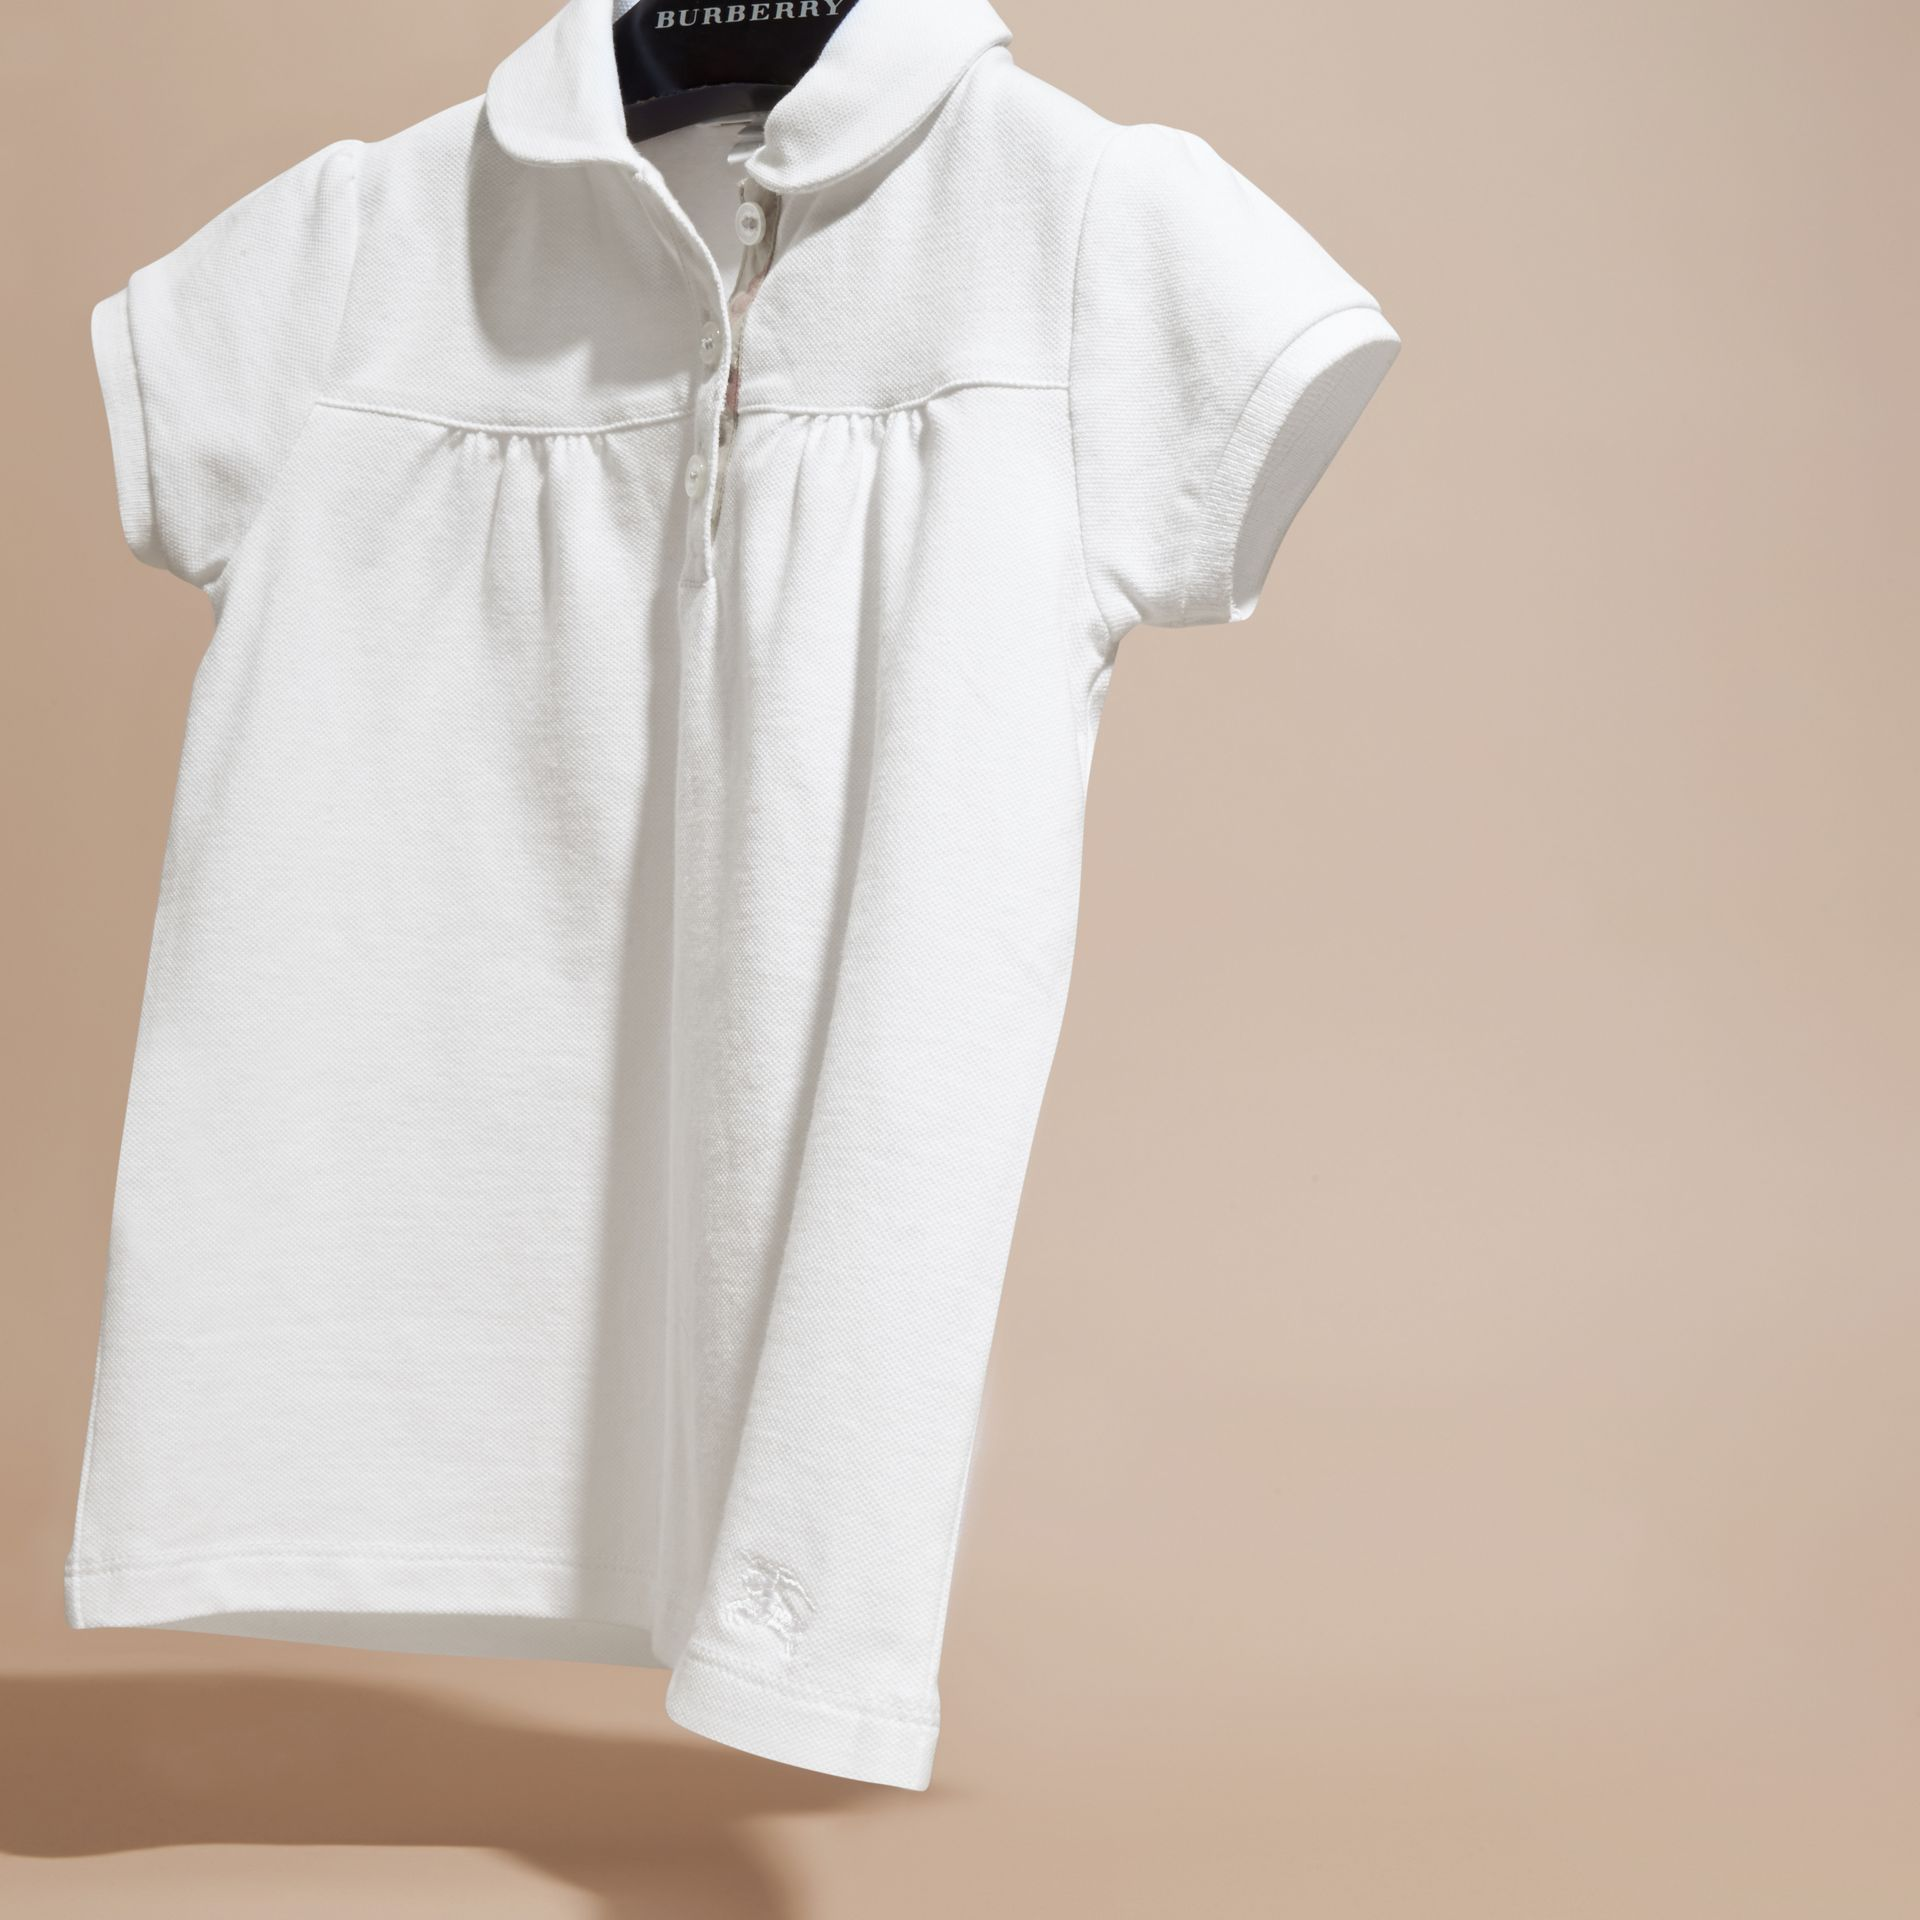 Peter Pan Collar Cotton Piqué Polo Shirt in White - gallery image 3